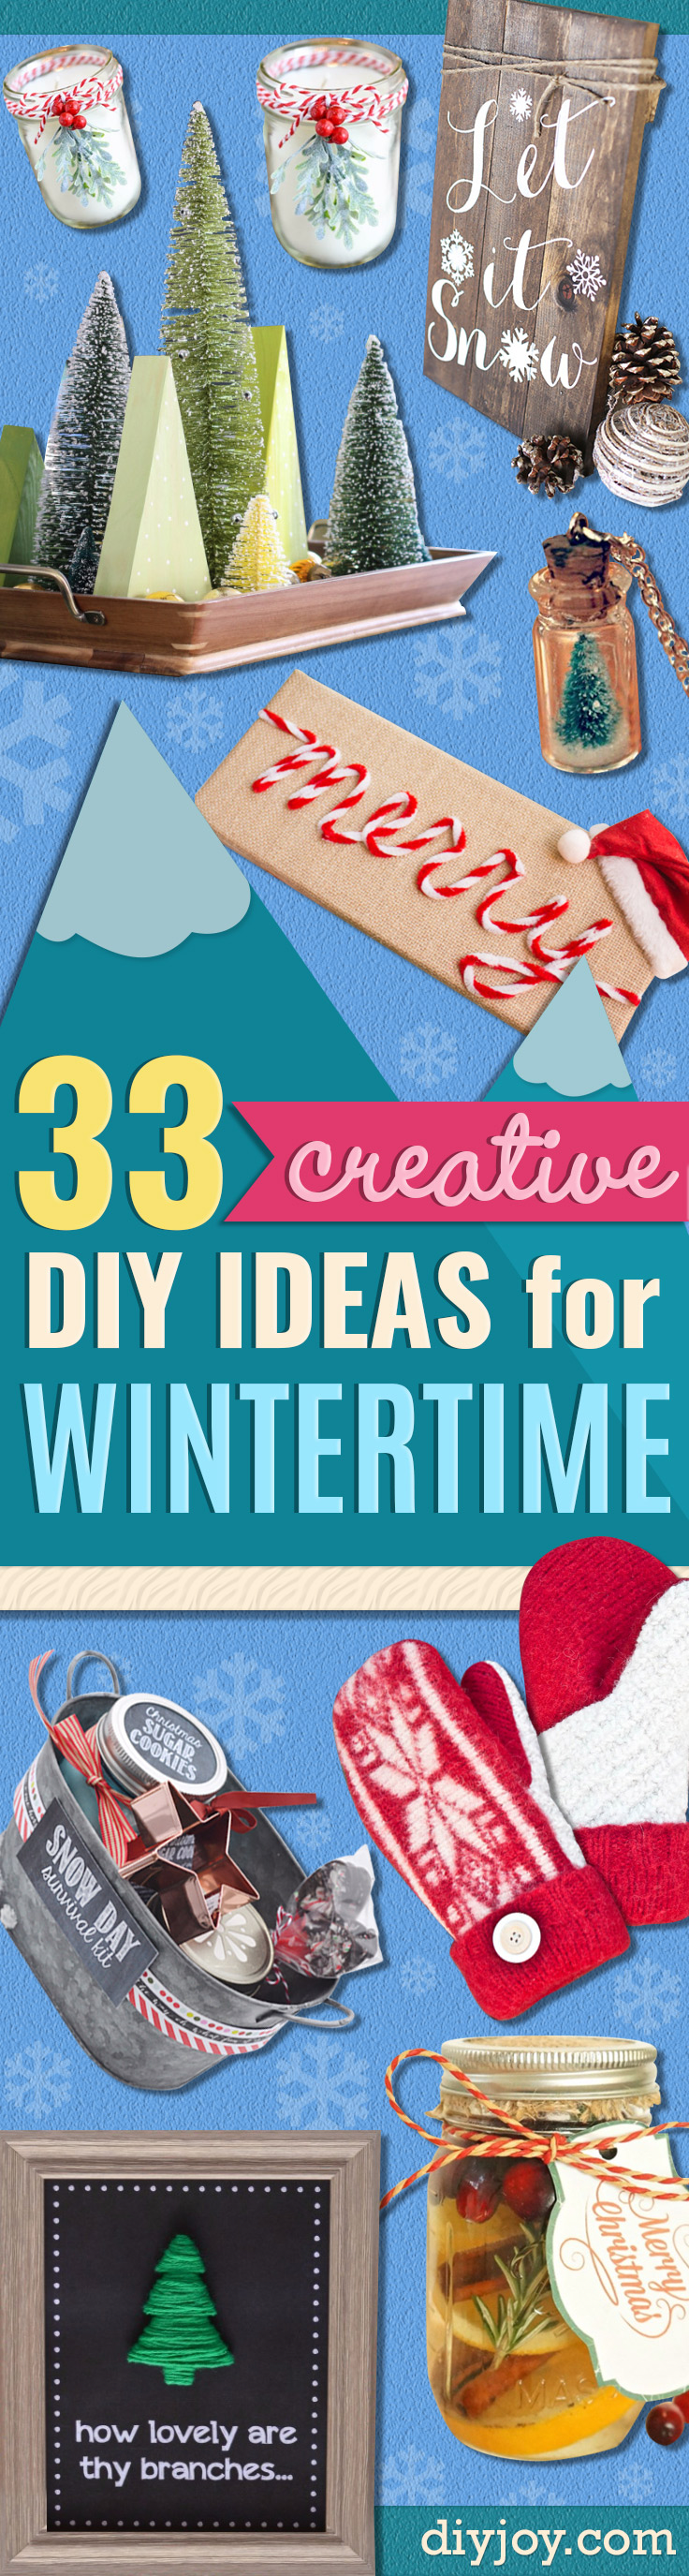 Best DIY Ideas for Wintertime - Winter Crafts with Snowflakes, Icicle Art and Projects, Wreaths, Woodland and Winter Wonderland Decor, Mason Jars and Dollar Store Ideas - Easy DIY Ideas to Decorate Home and Room for Winter - Creative Home Decor and Room Decorations for Adults, Teens and Kids http://diyjoy.com/diy-ideas-wintertime